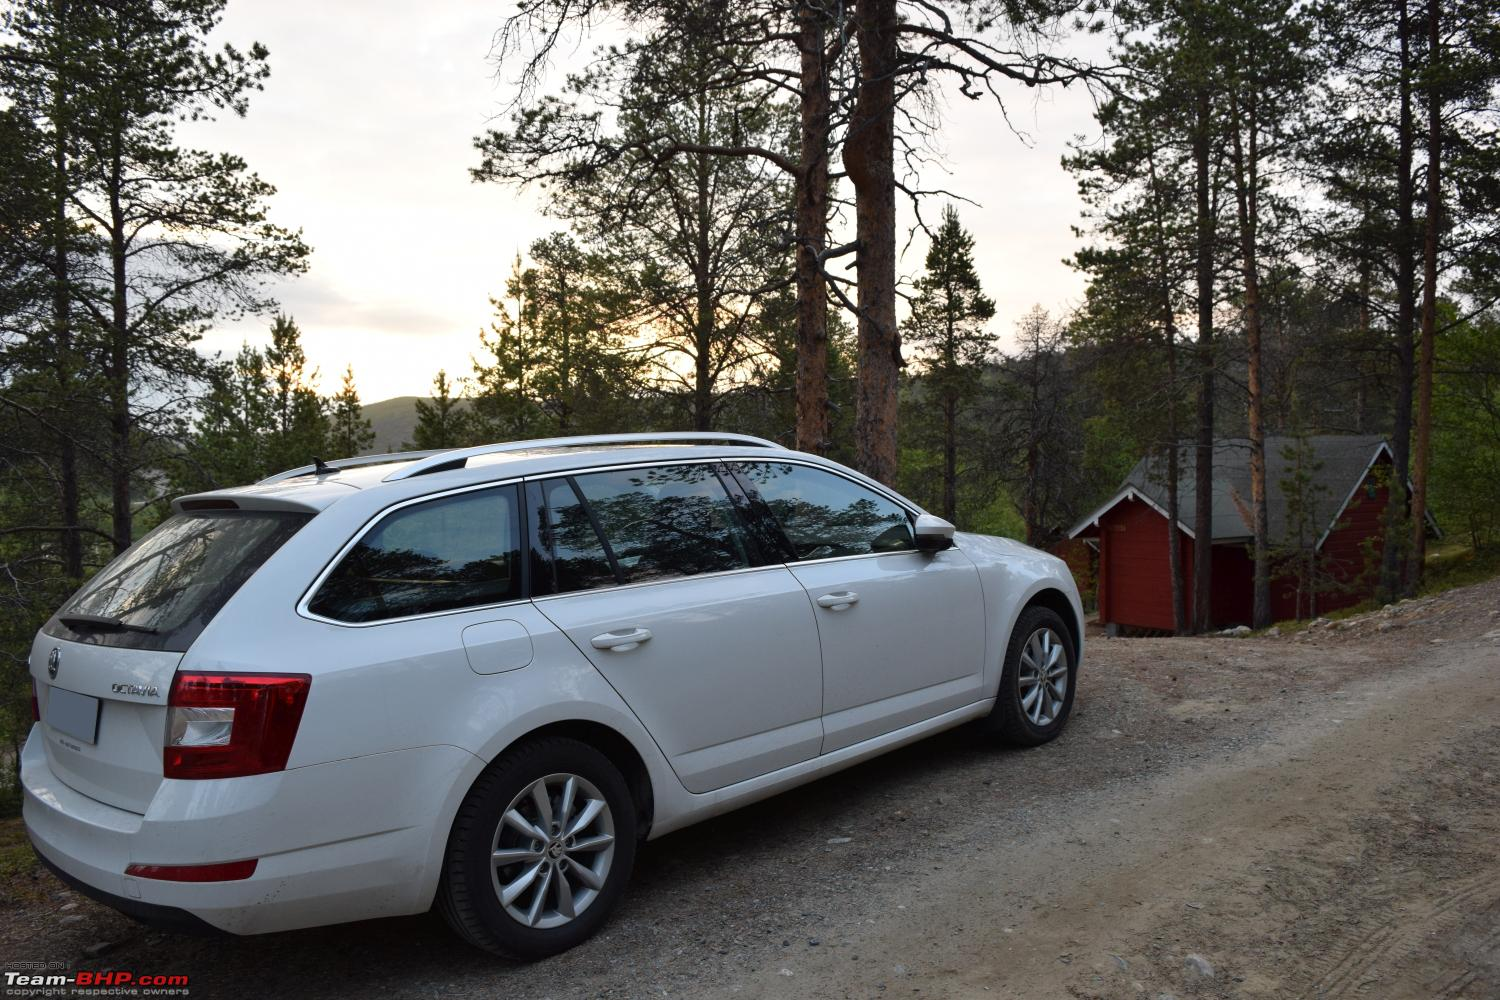 Ownership review skoda octavia combi 1 6l tdi dsg octavia_47 jpg